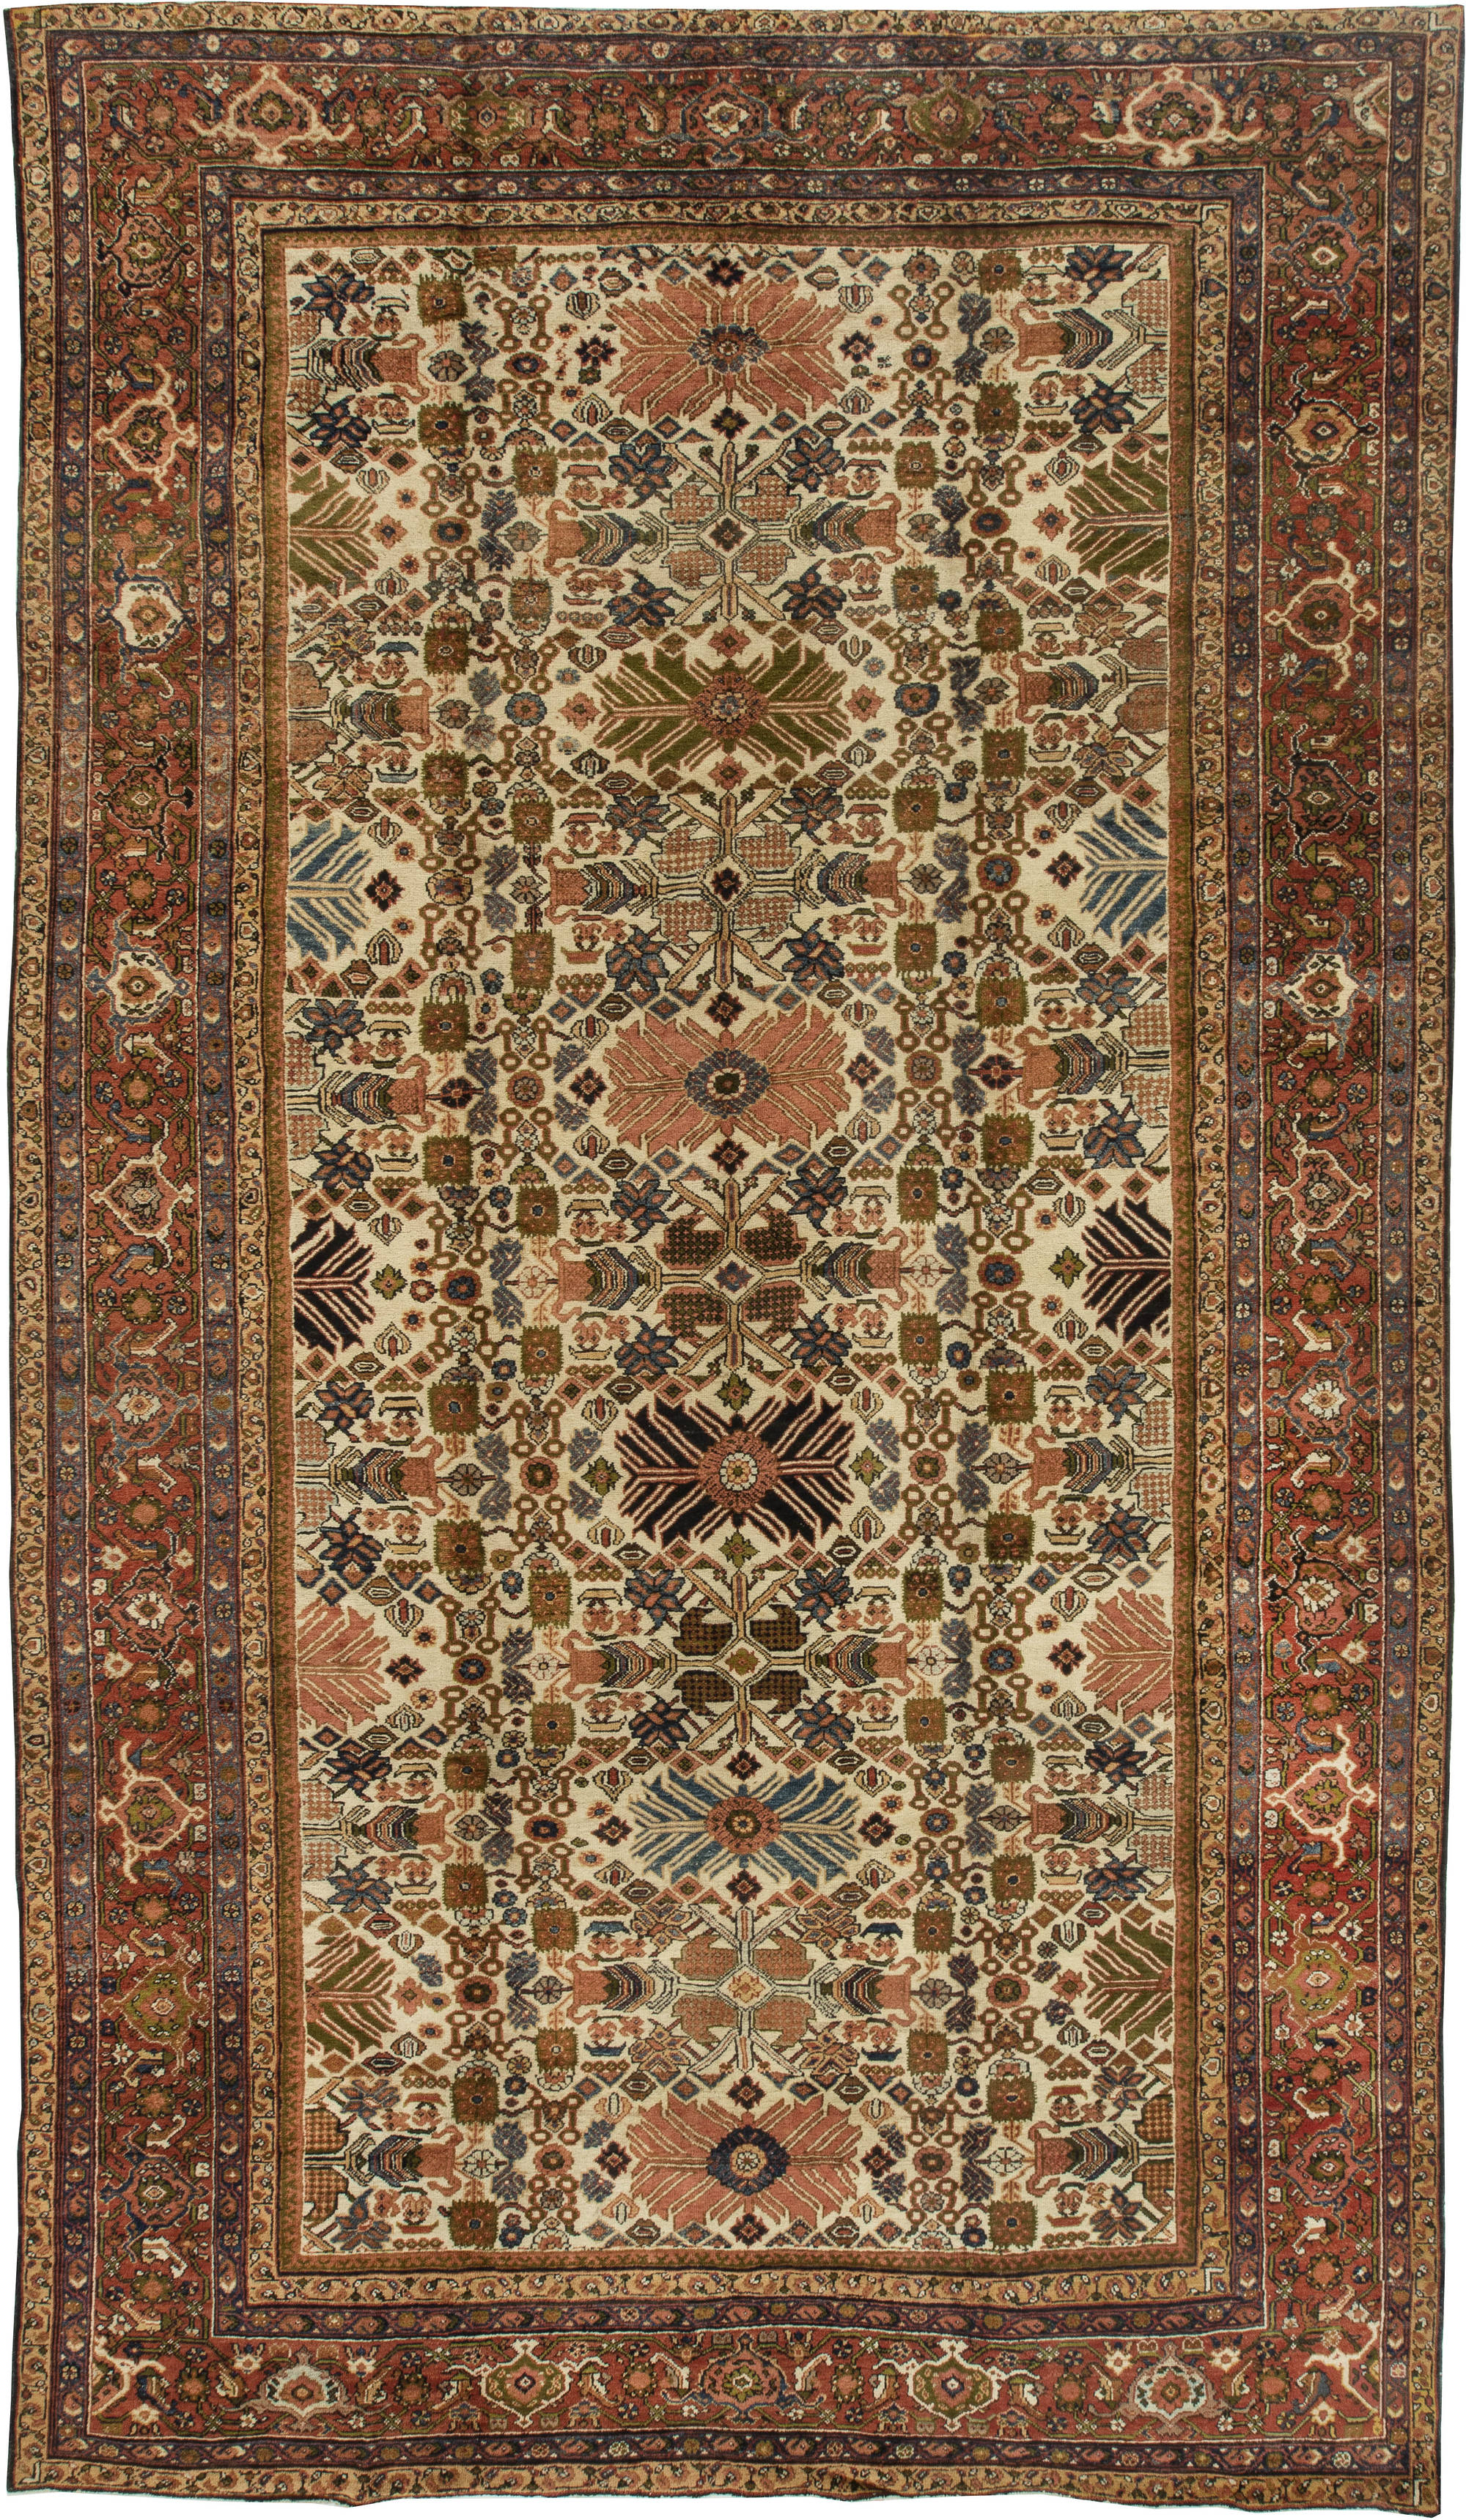 Sultanabad Rugs Allover Rugs by DLB New York